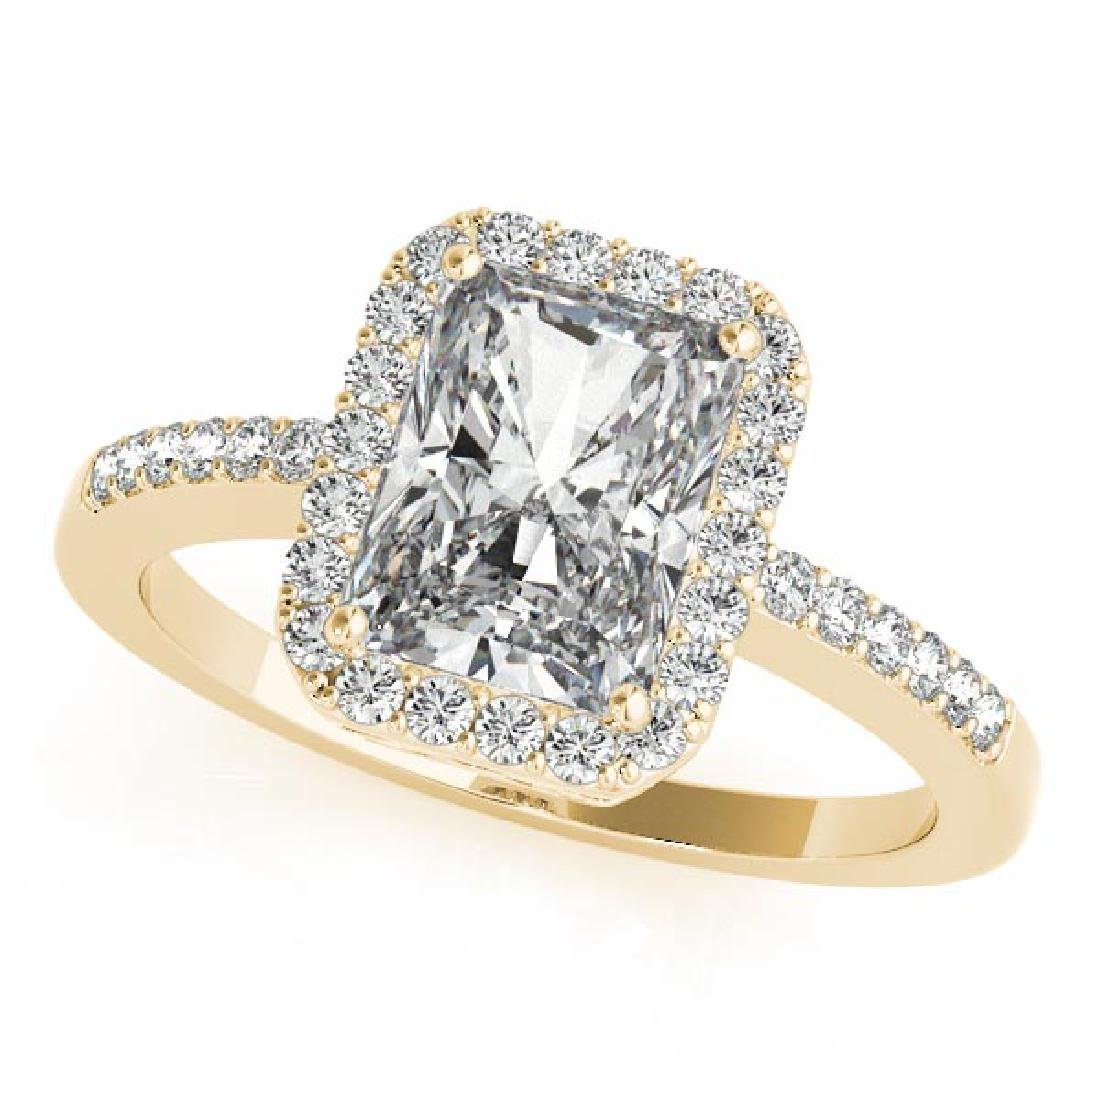 CERTIFIED 18KT WHITE GOLD 1.00 CT G-H/VS-SI1 DIAMOND HA